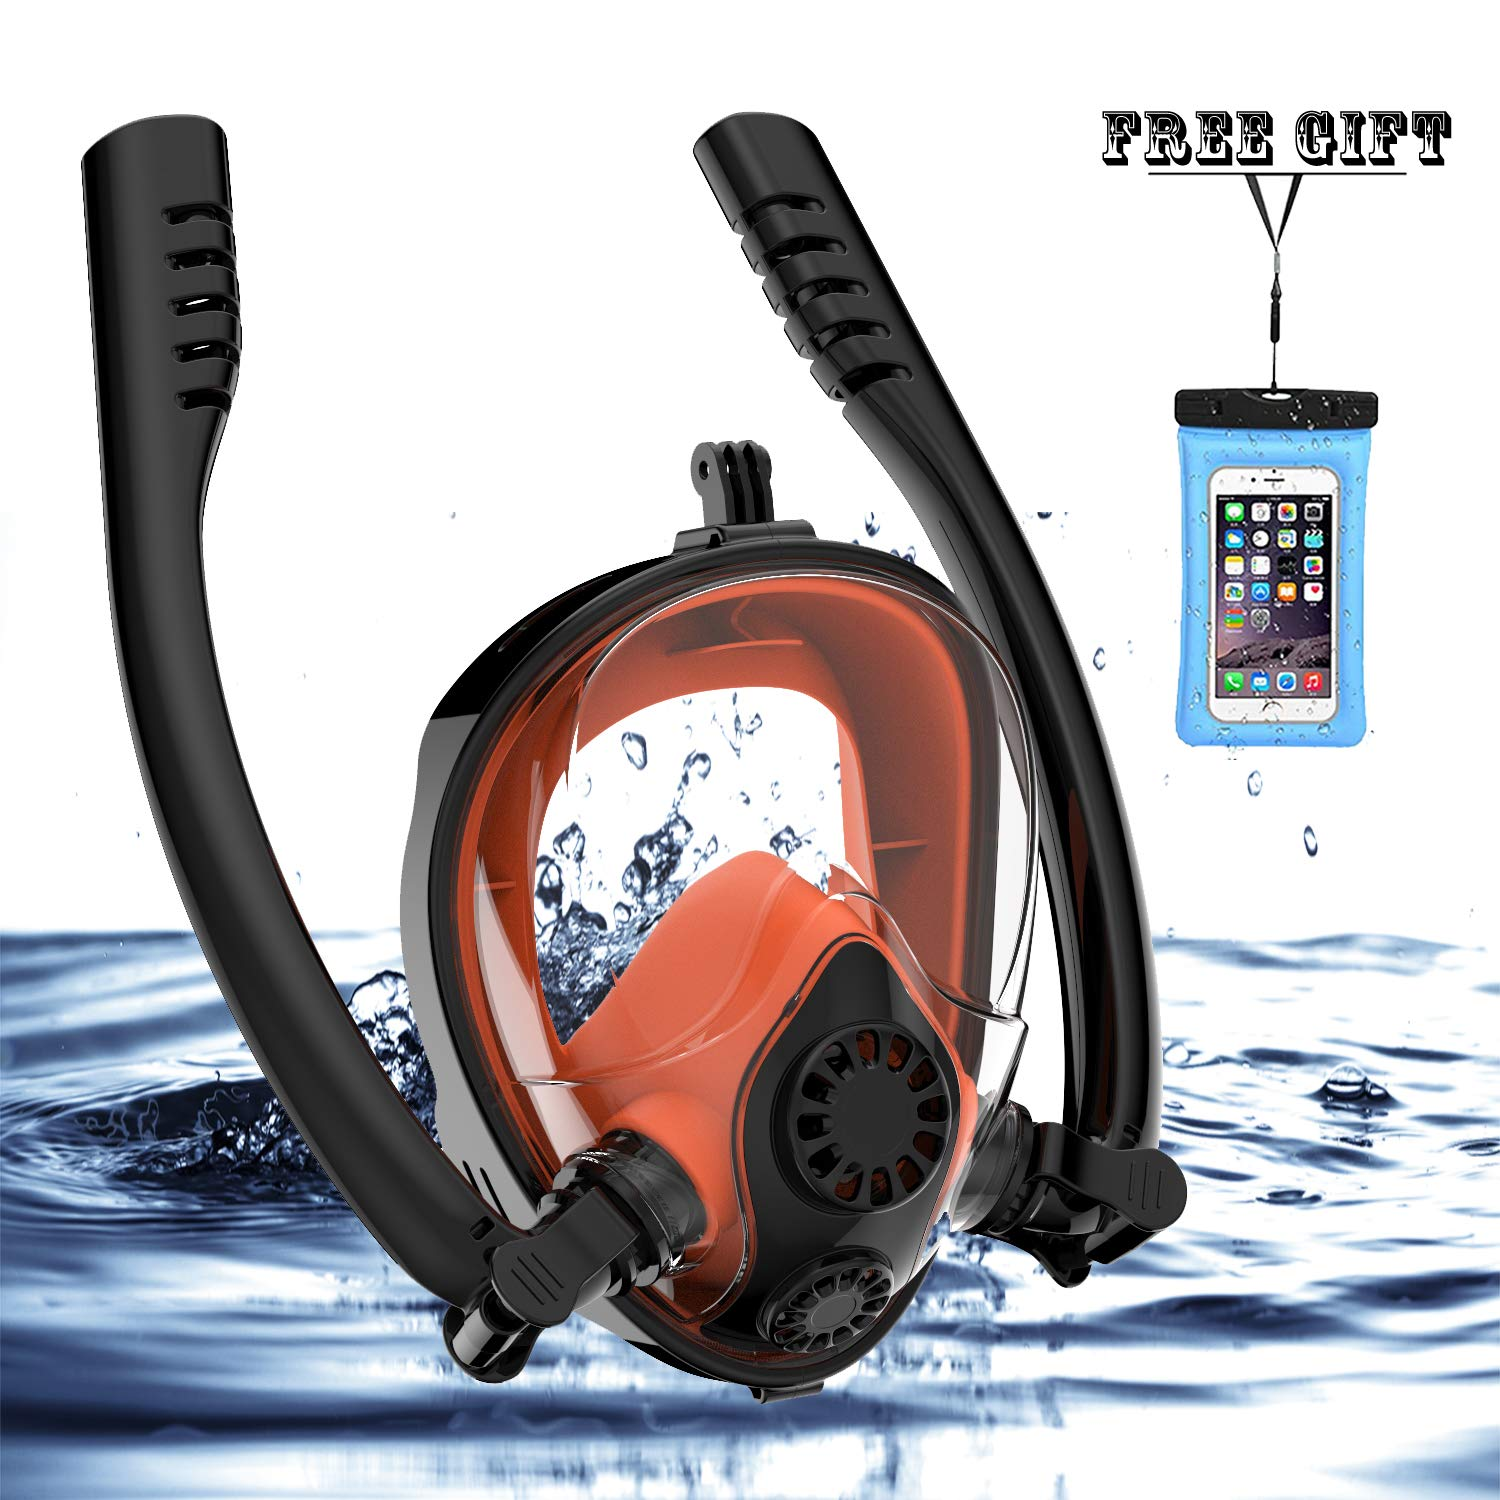 Full Face Snorkel Mask, HJKB K2 Free Breathing Snorkeling Mask with Double Tubes and 180° Panoramic Viewing, Zero Fog and Anti Leak Guarantee with Camera Mount for Adult (Orange, Medium Adult) by Jahuite (Image #1)